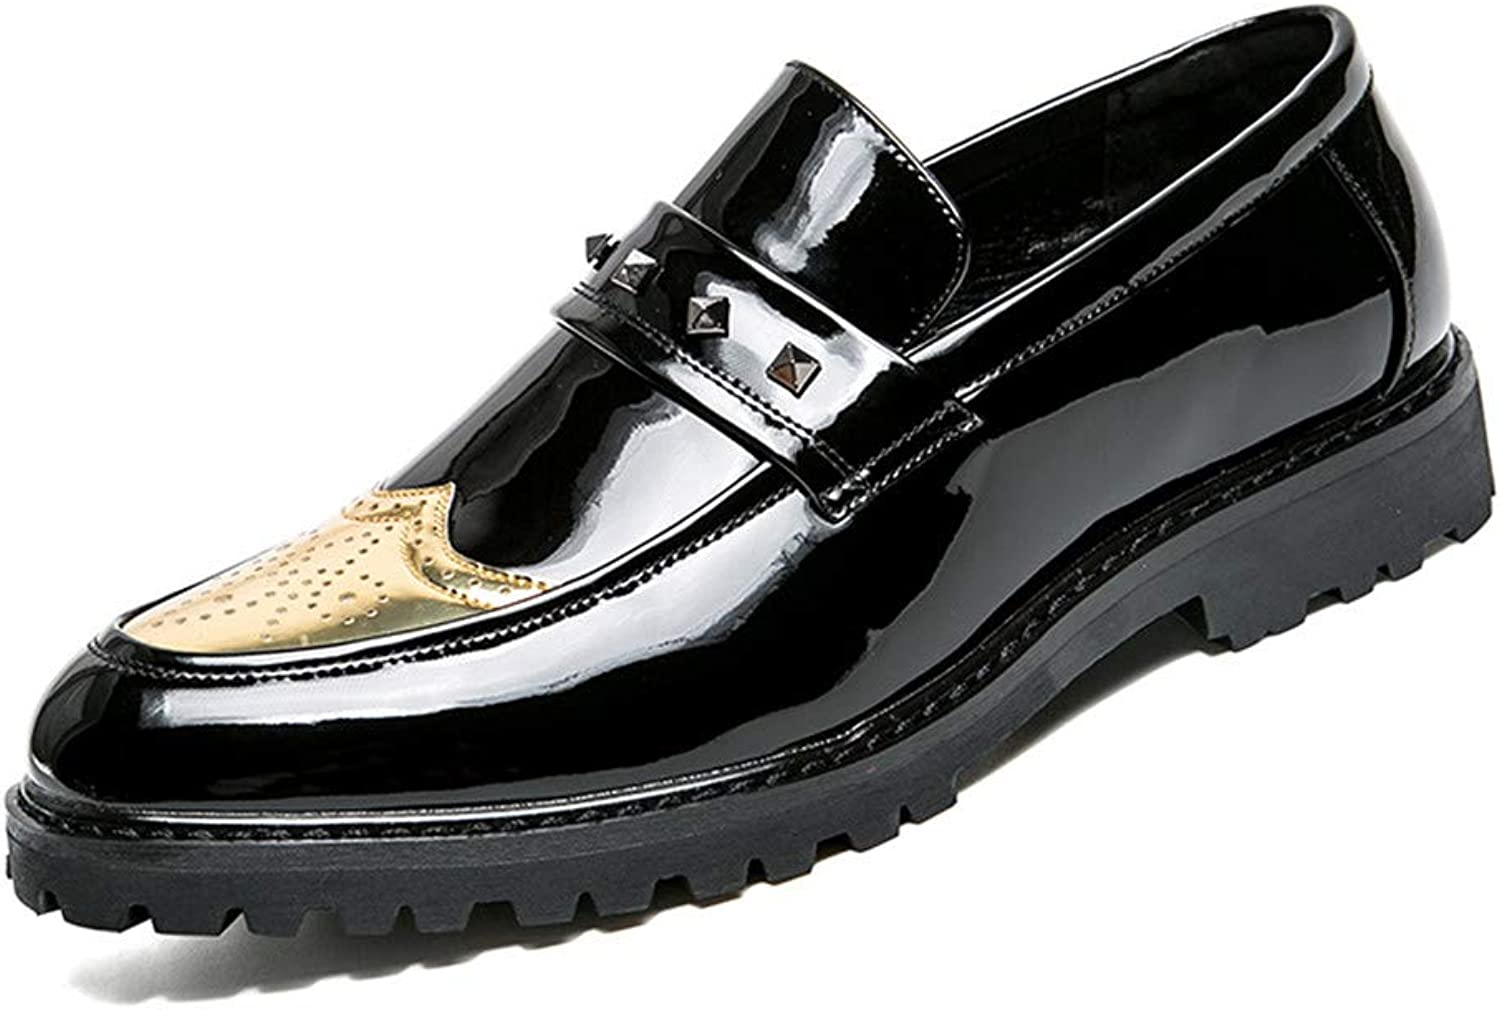 JIALUN-shoes Men's Personality Business Oxford Fashion Rivet with Thick Riveted Anti-Skid Patent Leather Brogue shoes